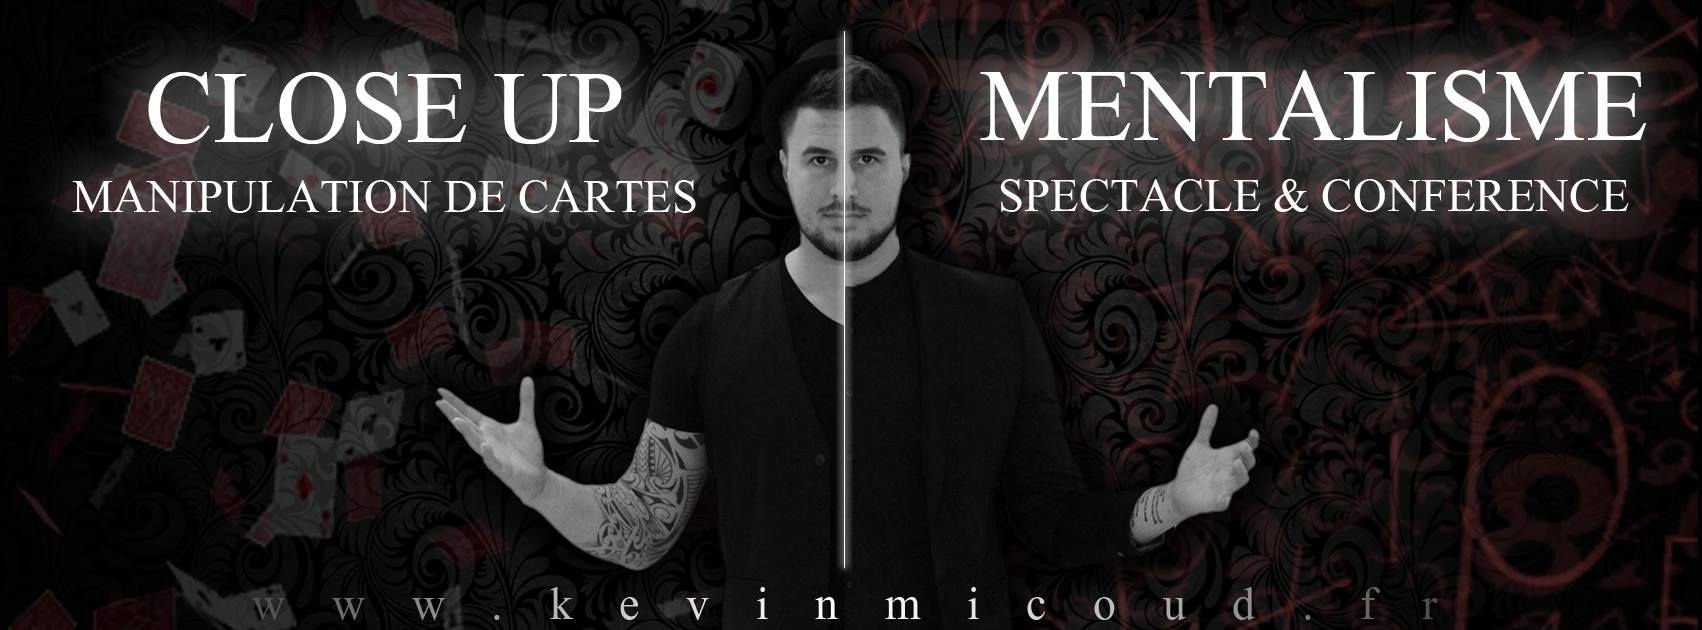 kevin-micoud-magicien-spectacle-magie